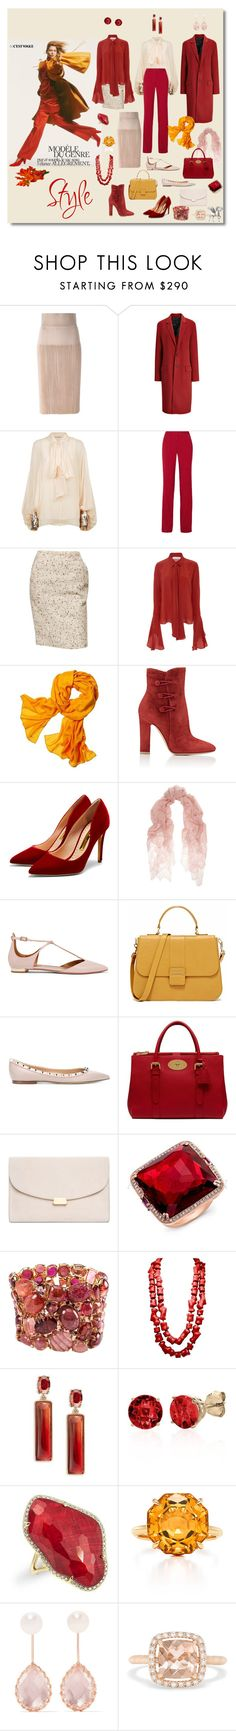 """""""fall leafs"""" by sensual-spirit ❤ liked on Polyvore featuring Givenchy, Joseph, Chloé, ADAM, Nellie Partow, Reed Krakoff, Gianvito Rossi, Rupert Sanderson, Valentino and Aquazzura"""